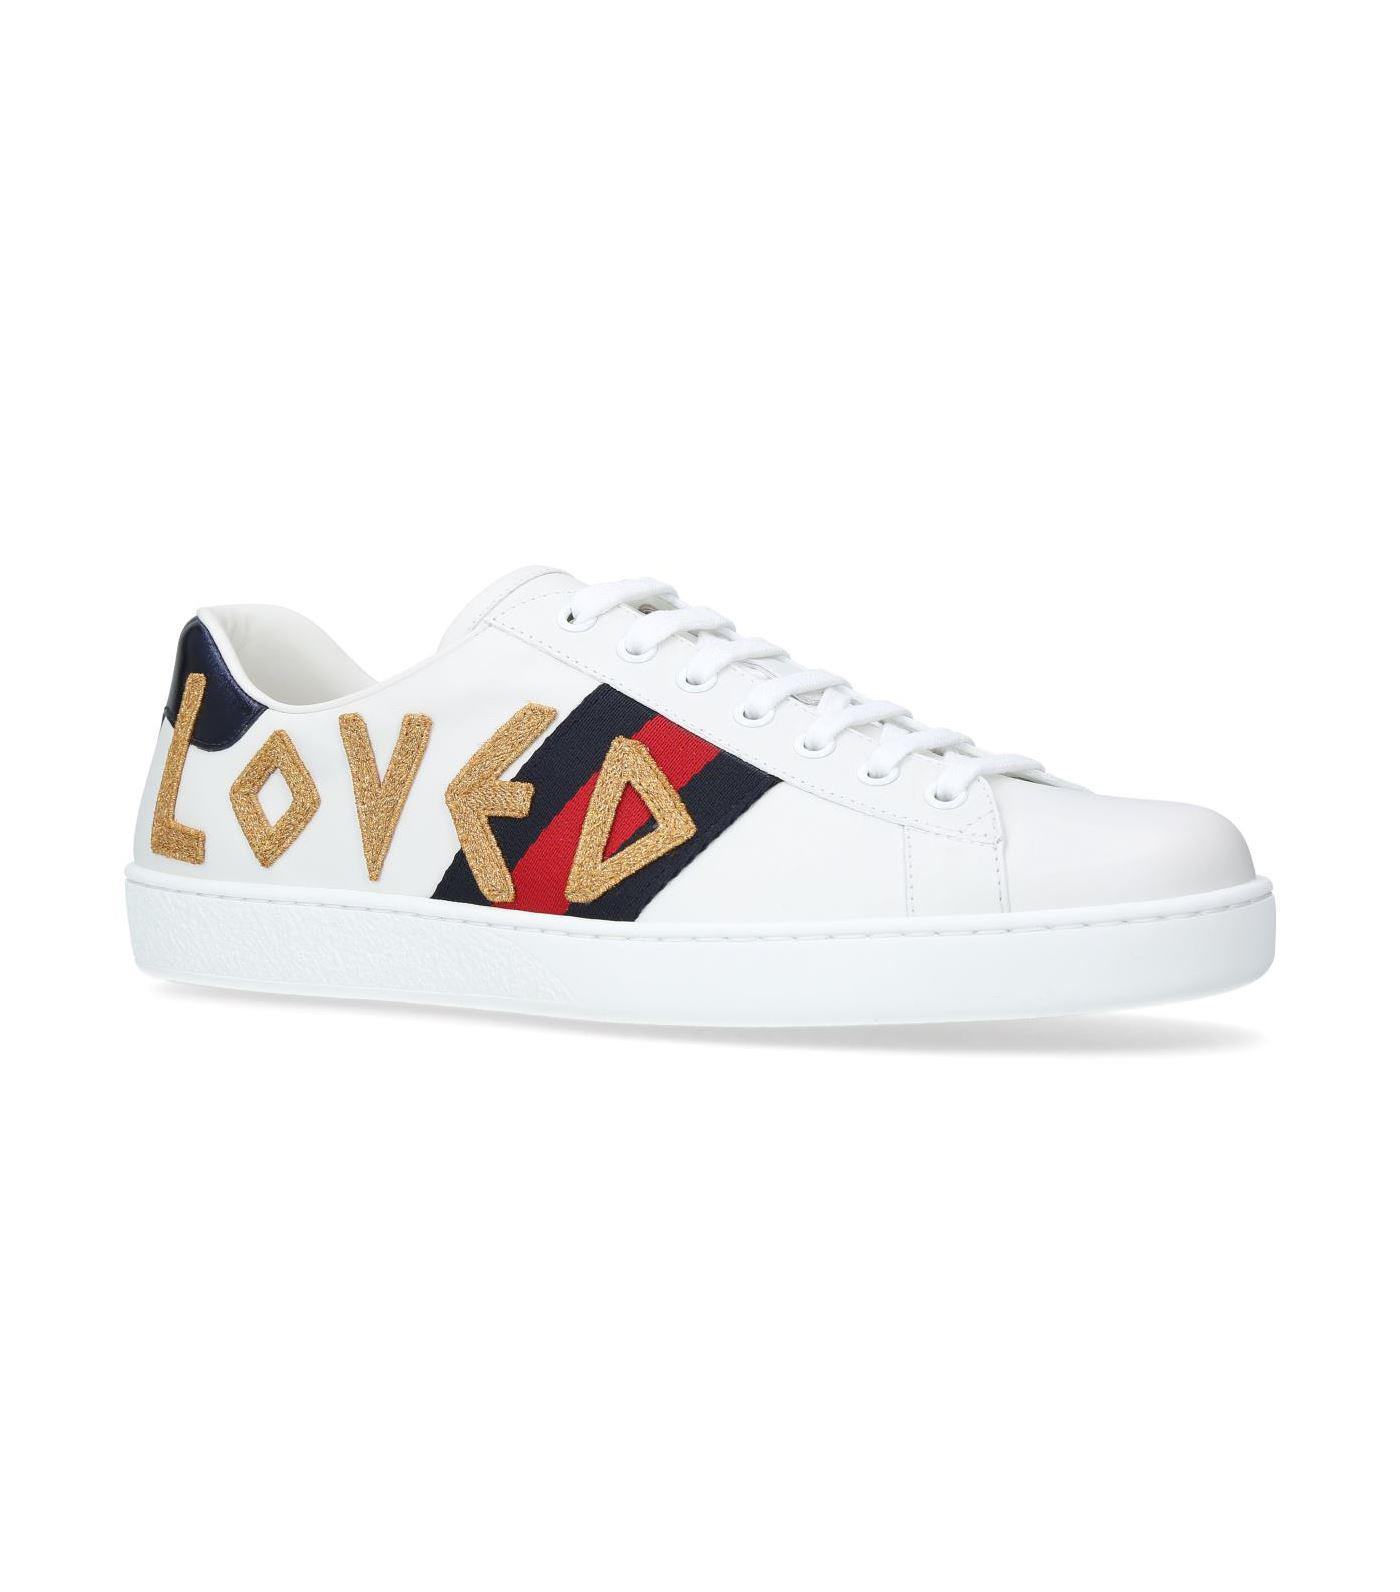 69c31500d0e04 Lyst - Gucci Ace Loved Sneakers in White for Men